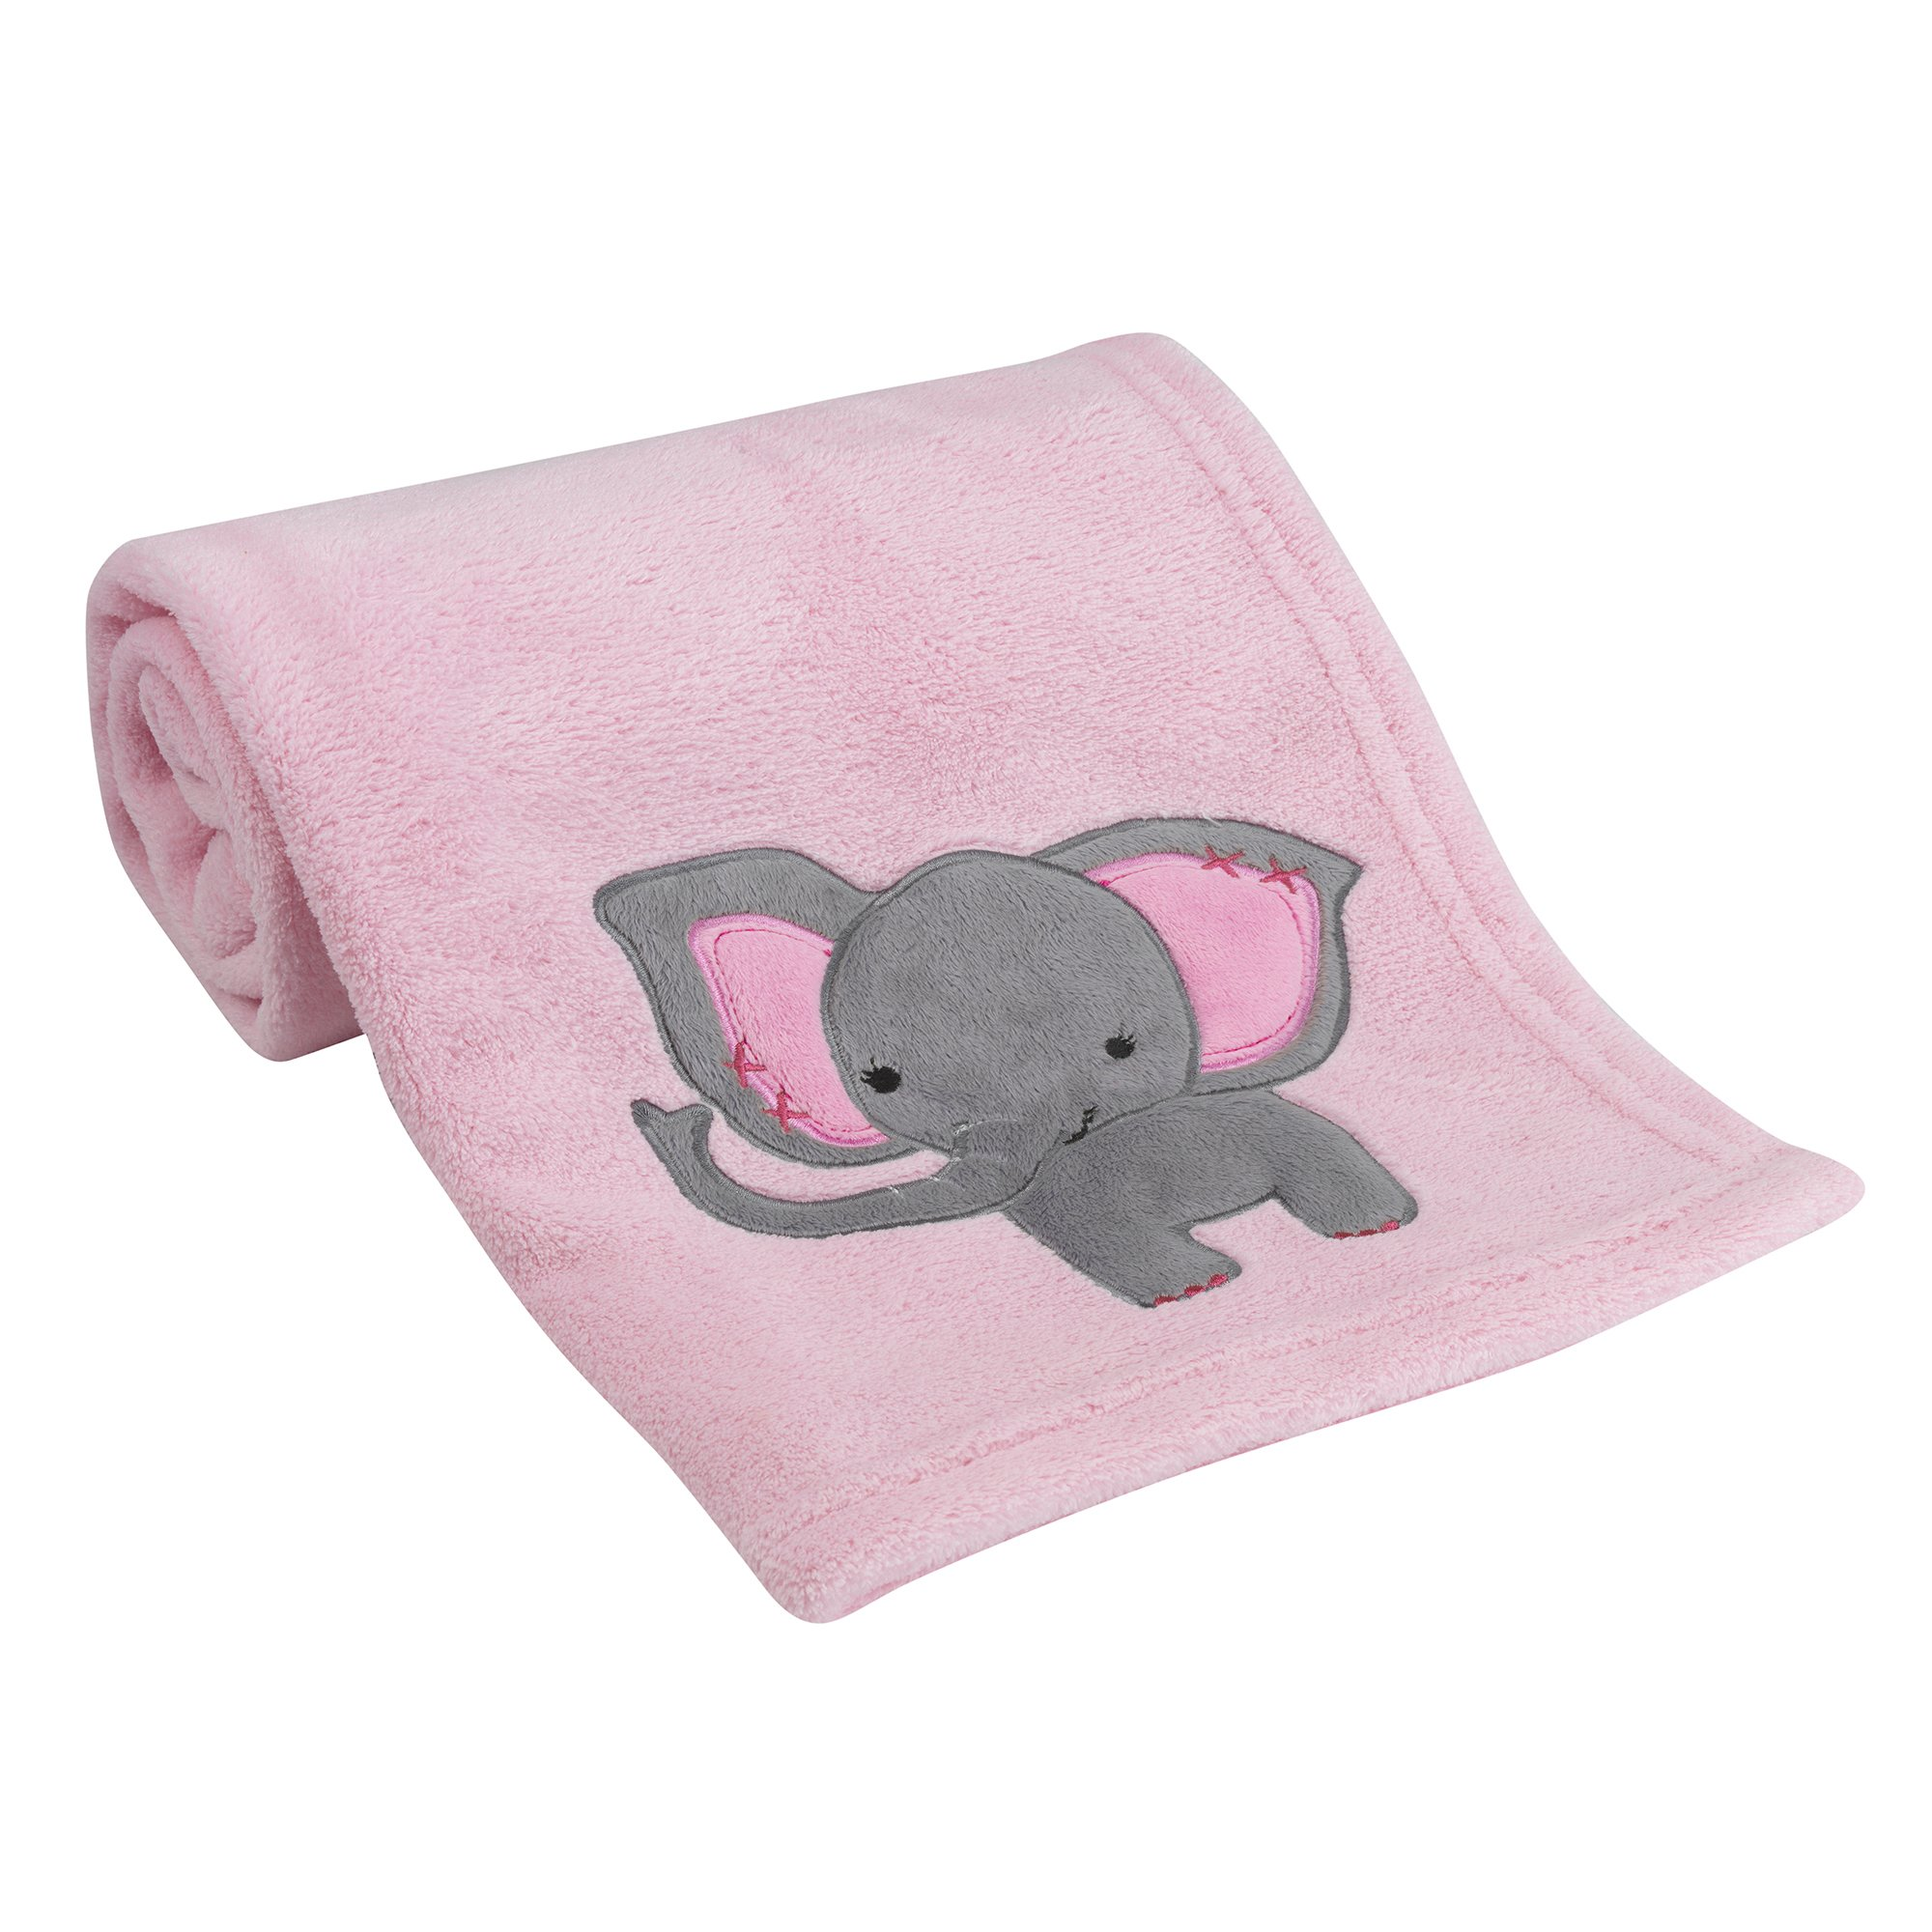 Bedtime Originals Twinkle Toes Elephant Blanket, Pink/Gray by Bedtime Originals